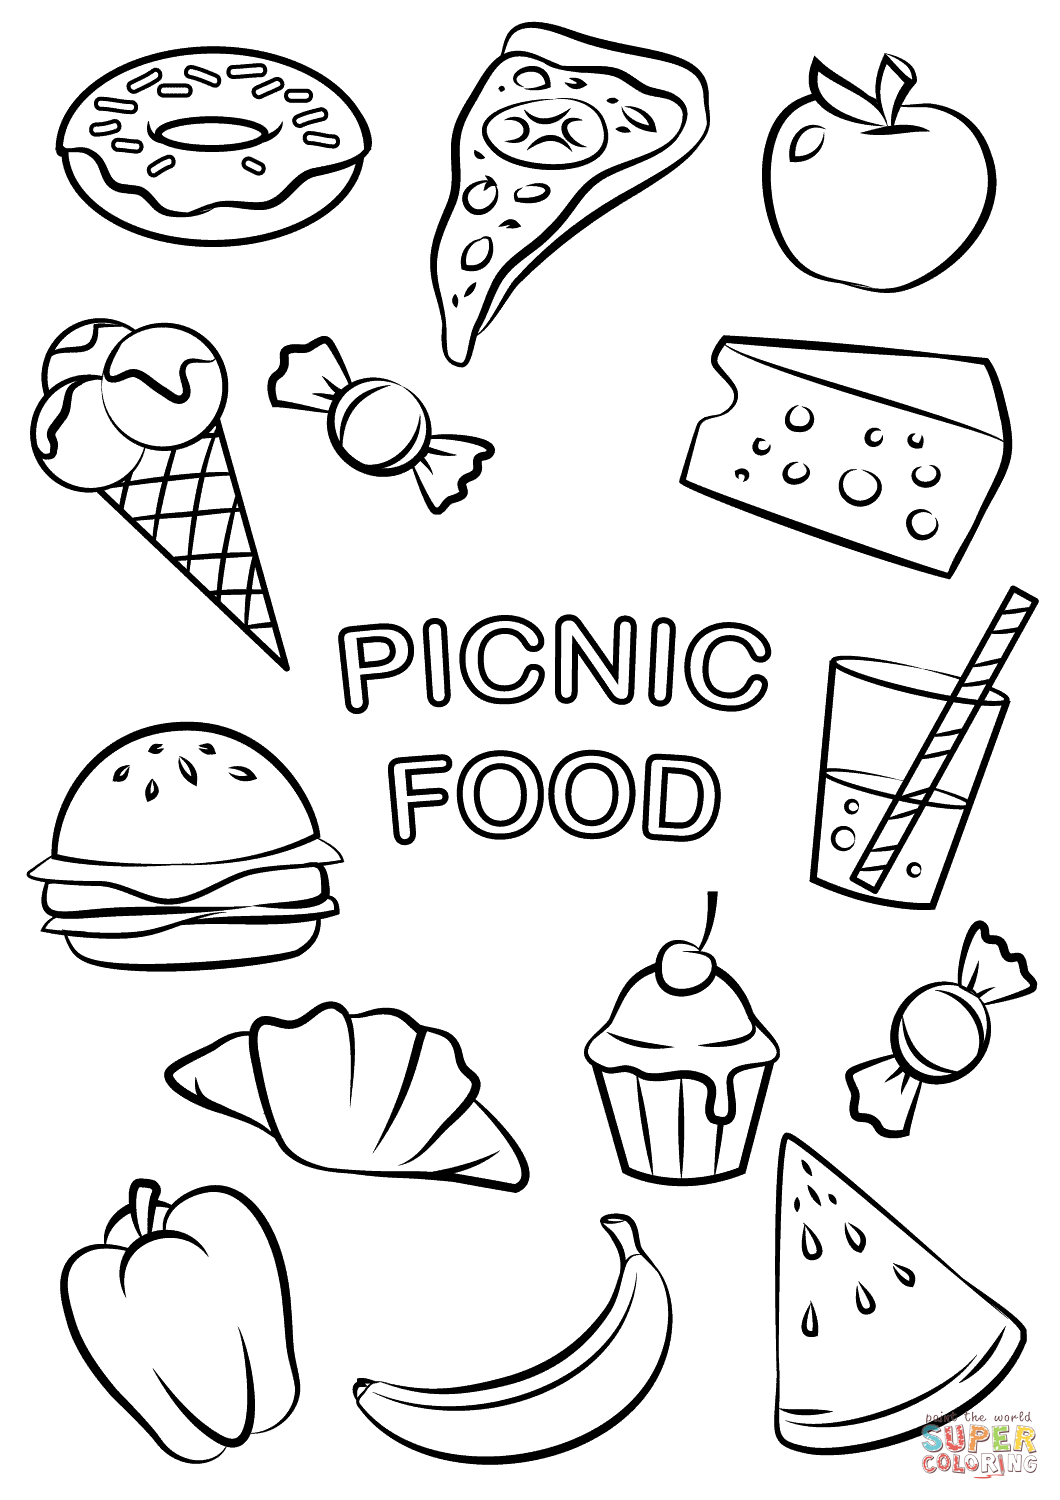 1060x1500 Picnic Food Coloring Page Free Printable Coloring Pages Coloring